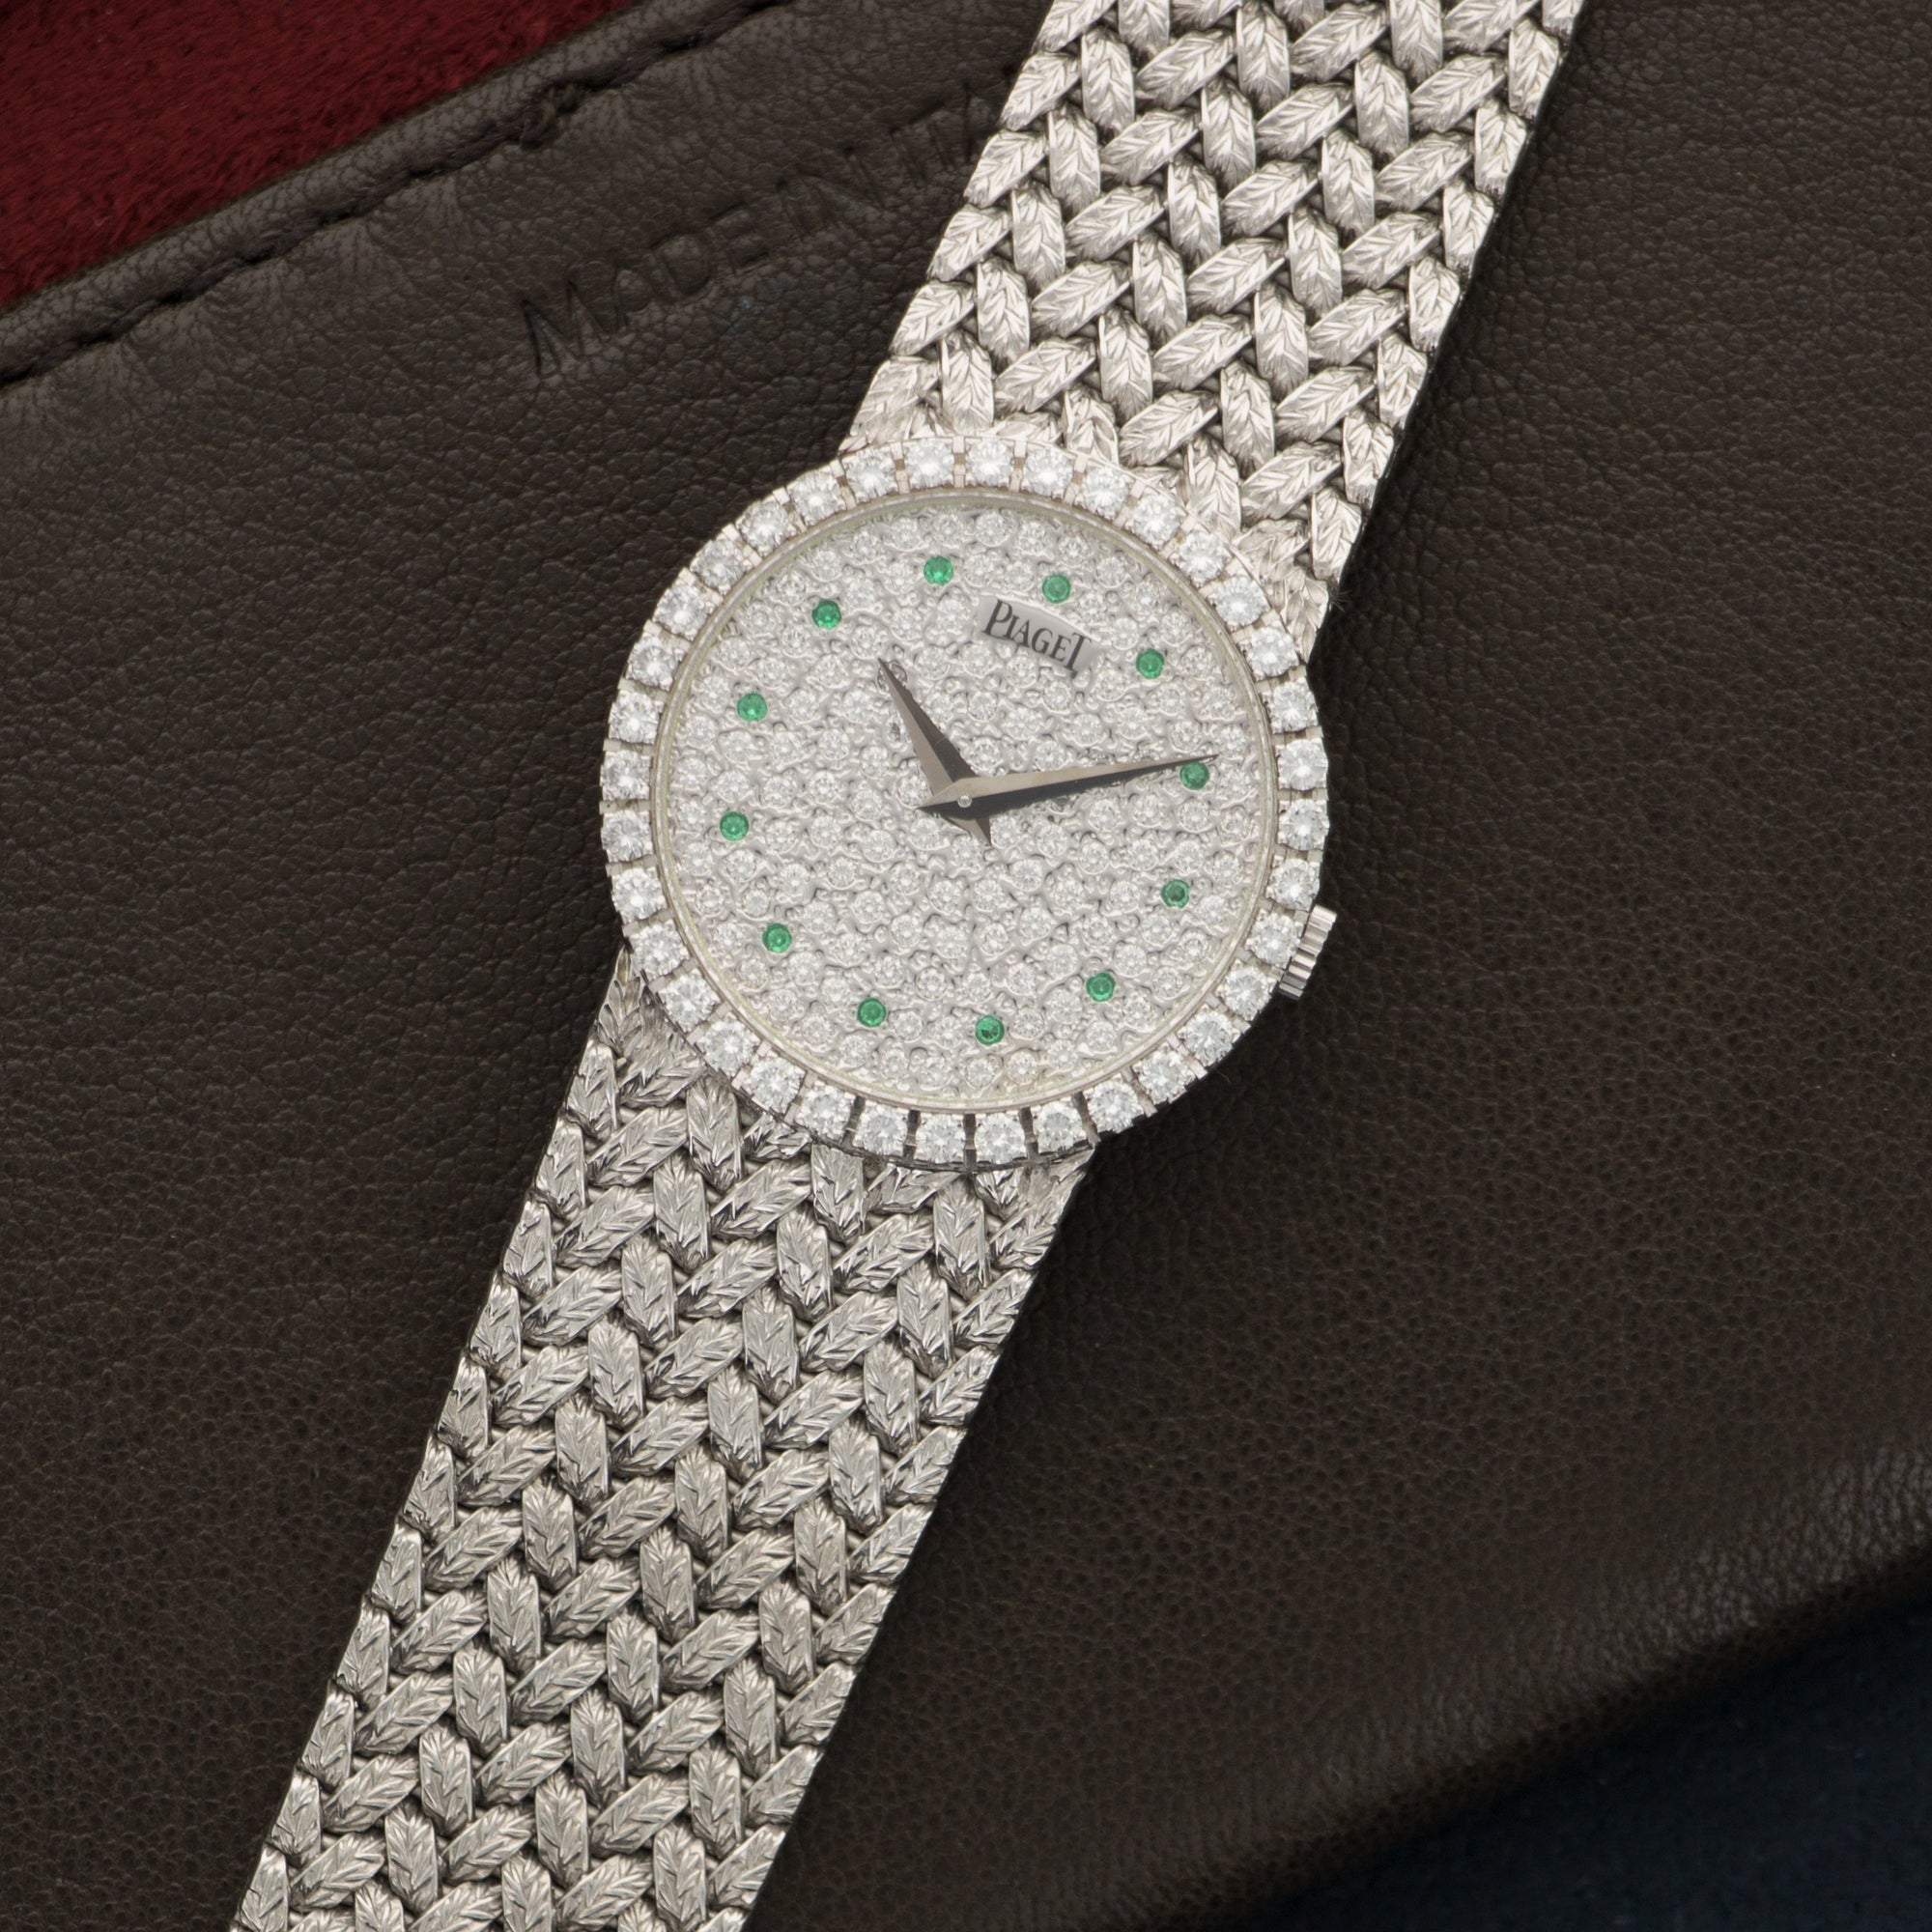 Piaget Vintage 9706 18k WG  Excellent Ladies 18k WG Pave Diamond with Emerald Markers 25mm Manual 1970s White Gold Bracelet Handmade Leather Travel Pouch